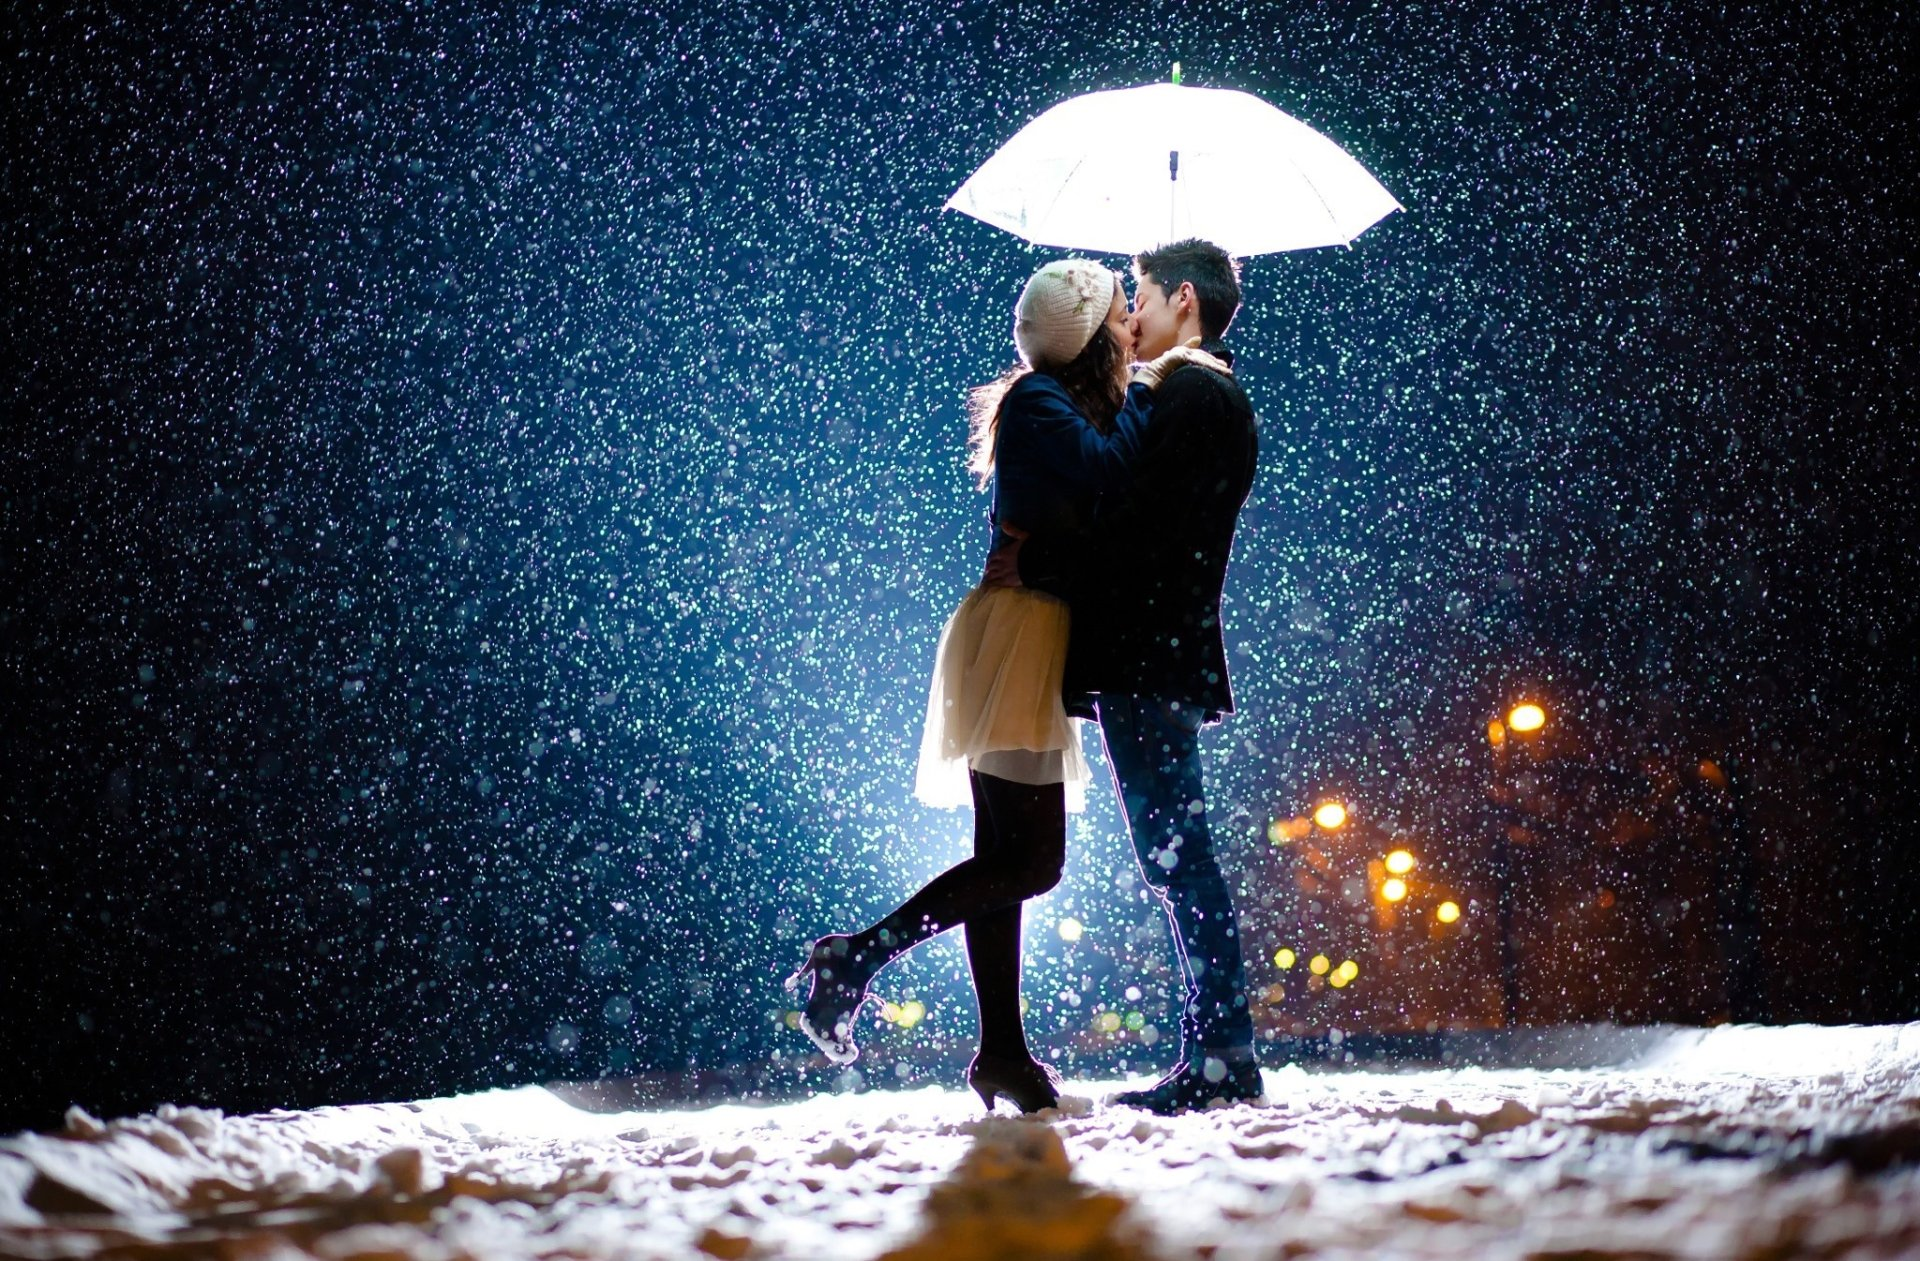 Women - Mood  Girl Boy Snowfall Umbrella Street Evening Kiss Love Wallpaper